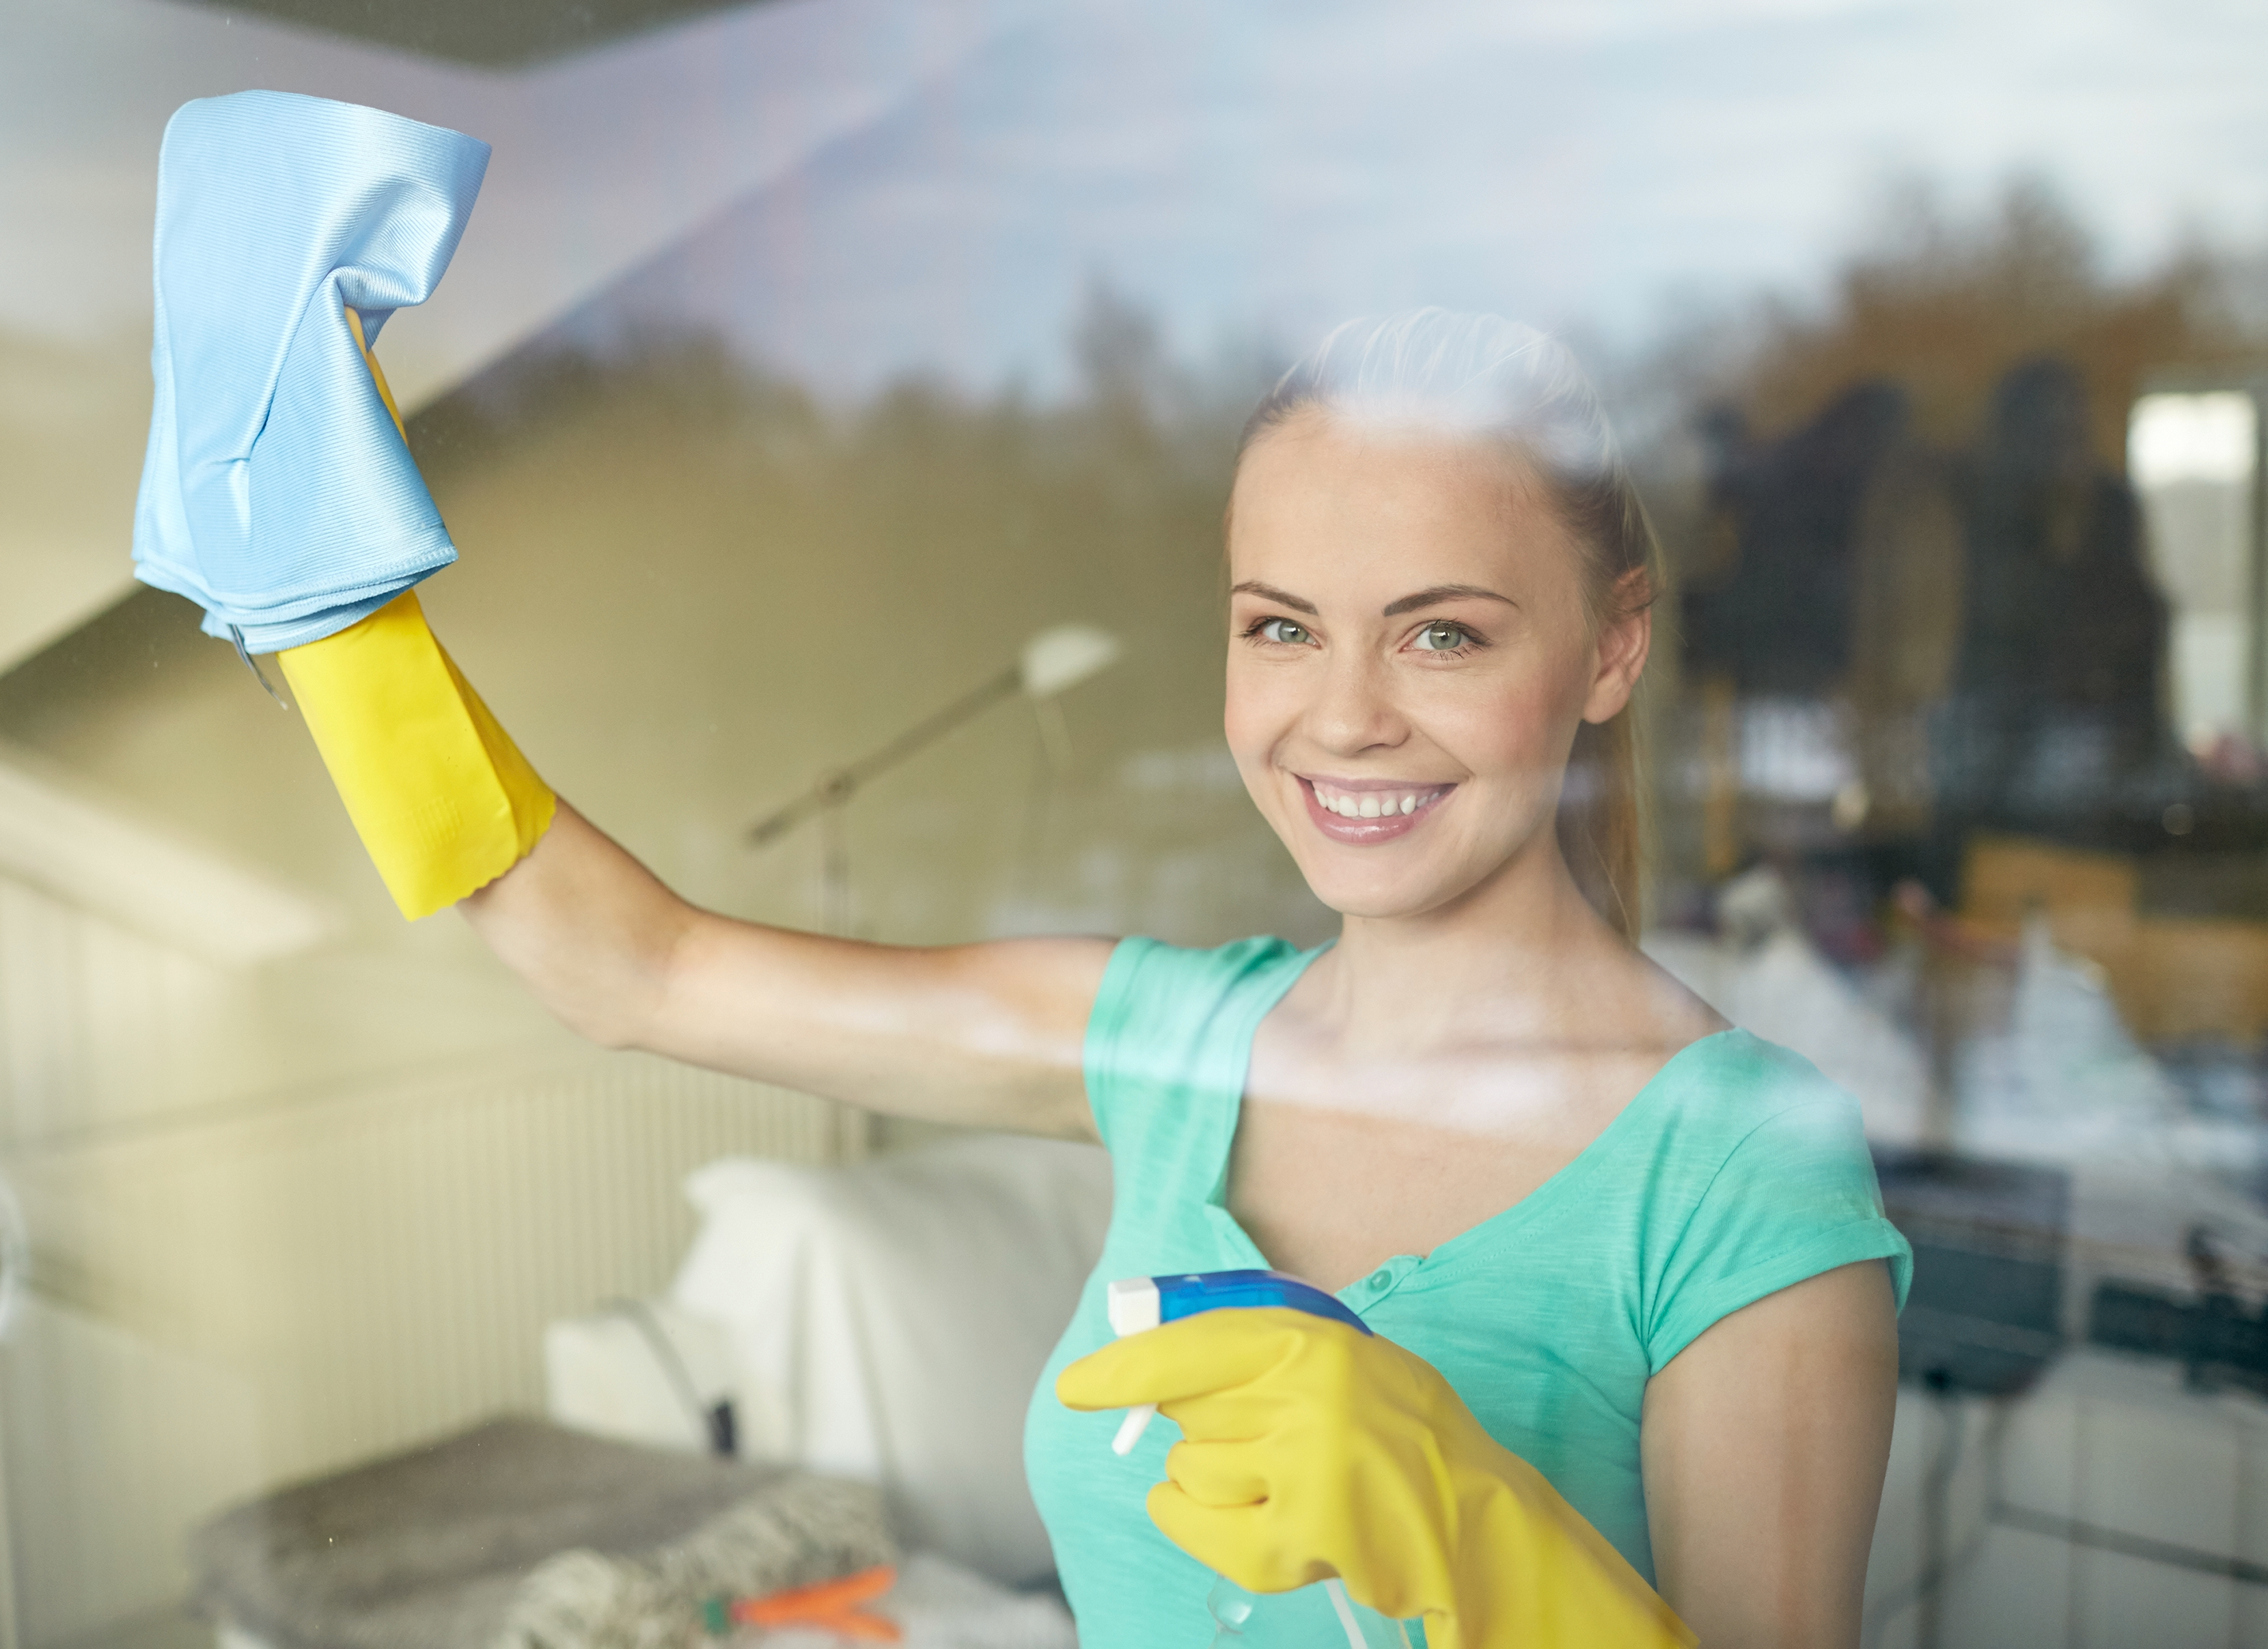 11201577-happy-woman-in-gloves-cleaning-window-with-rag